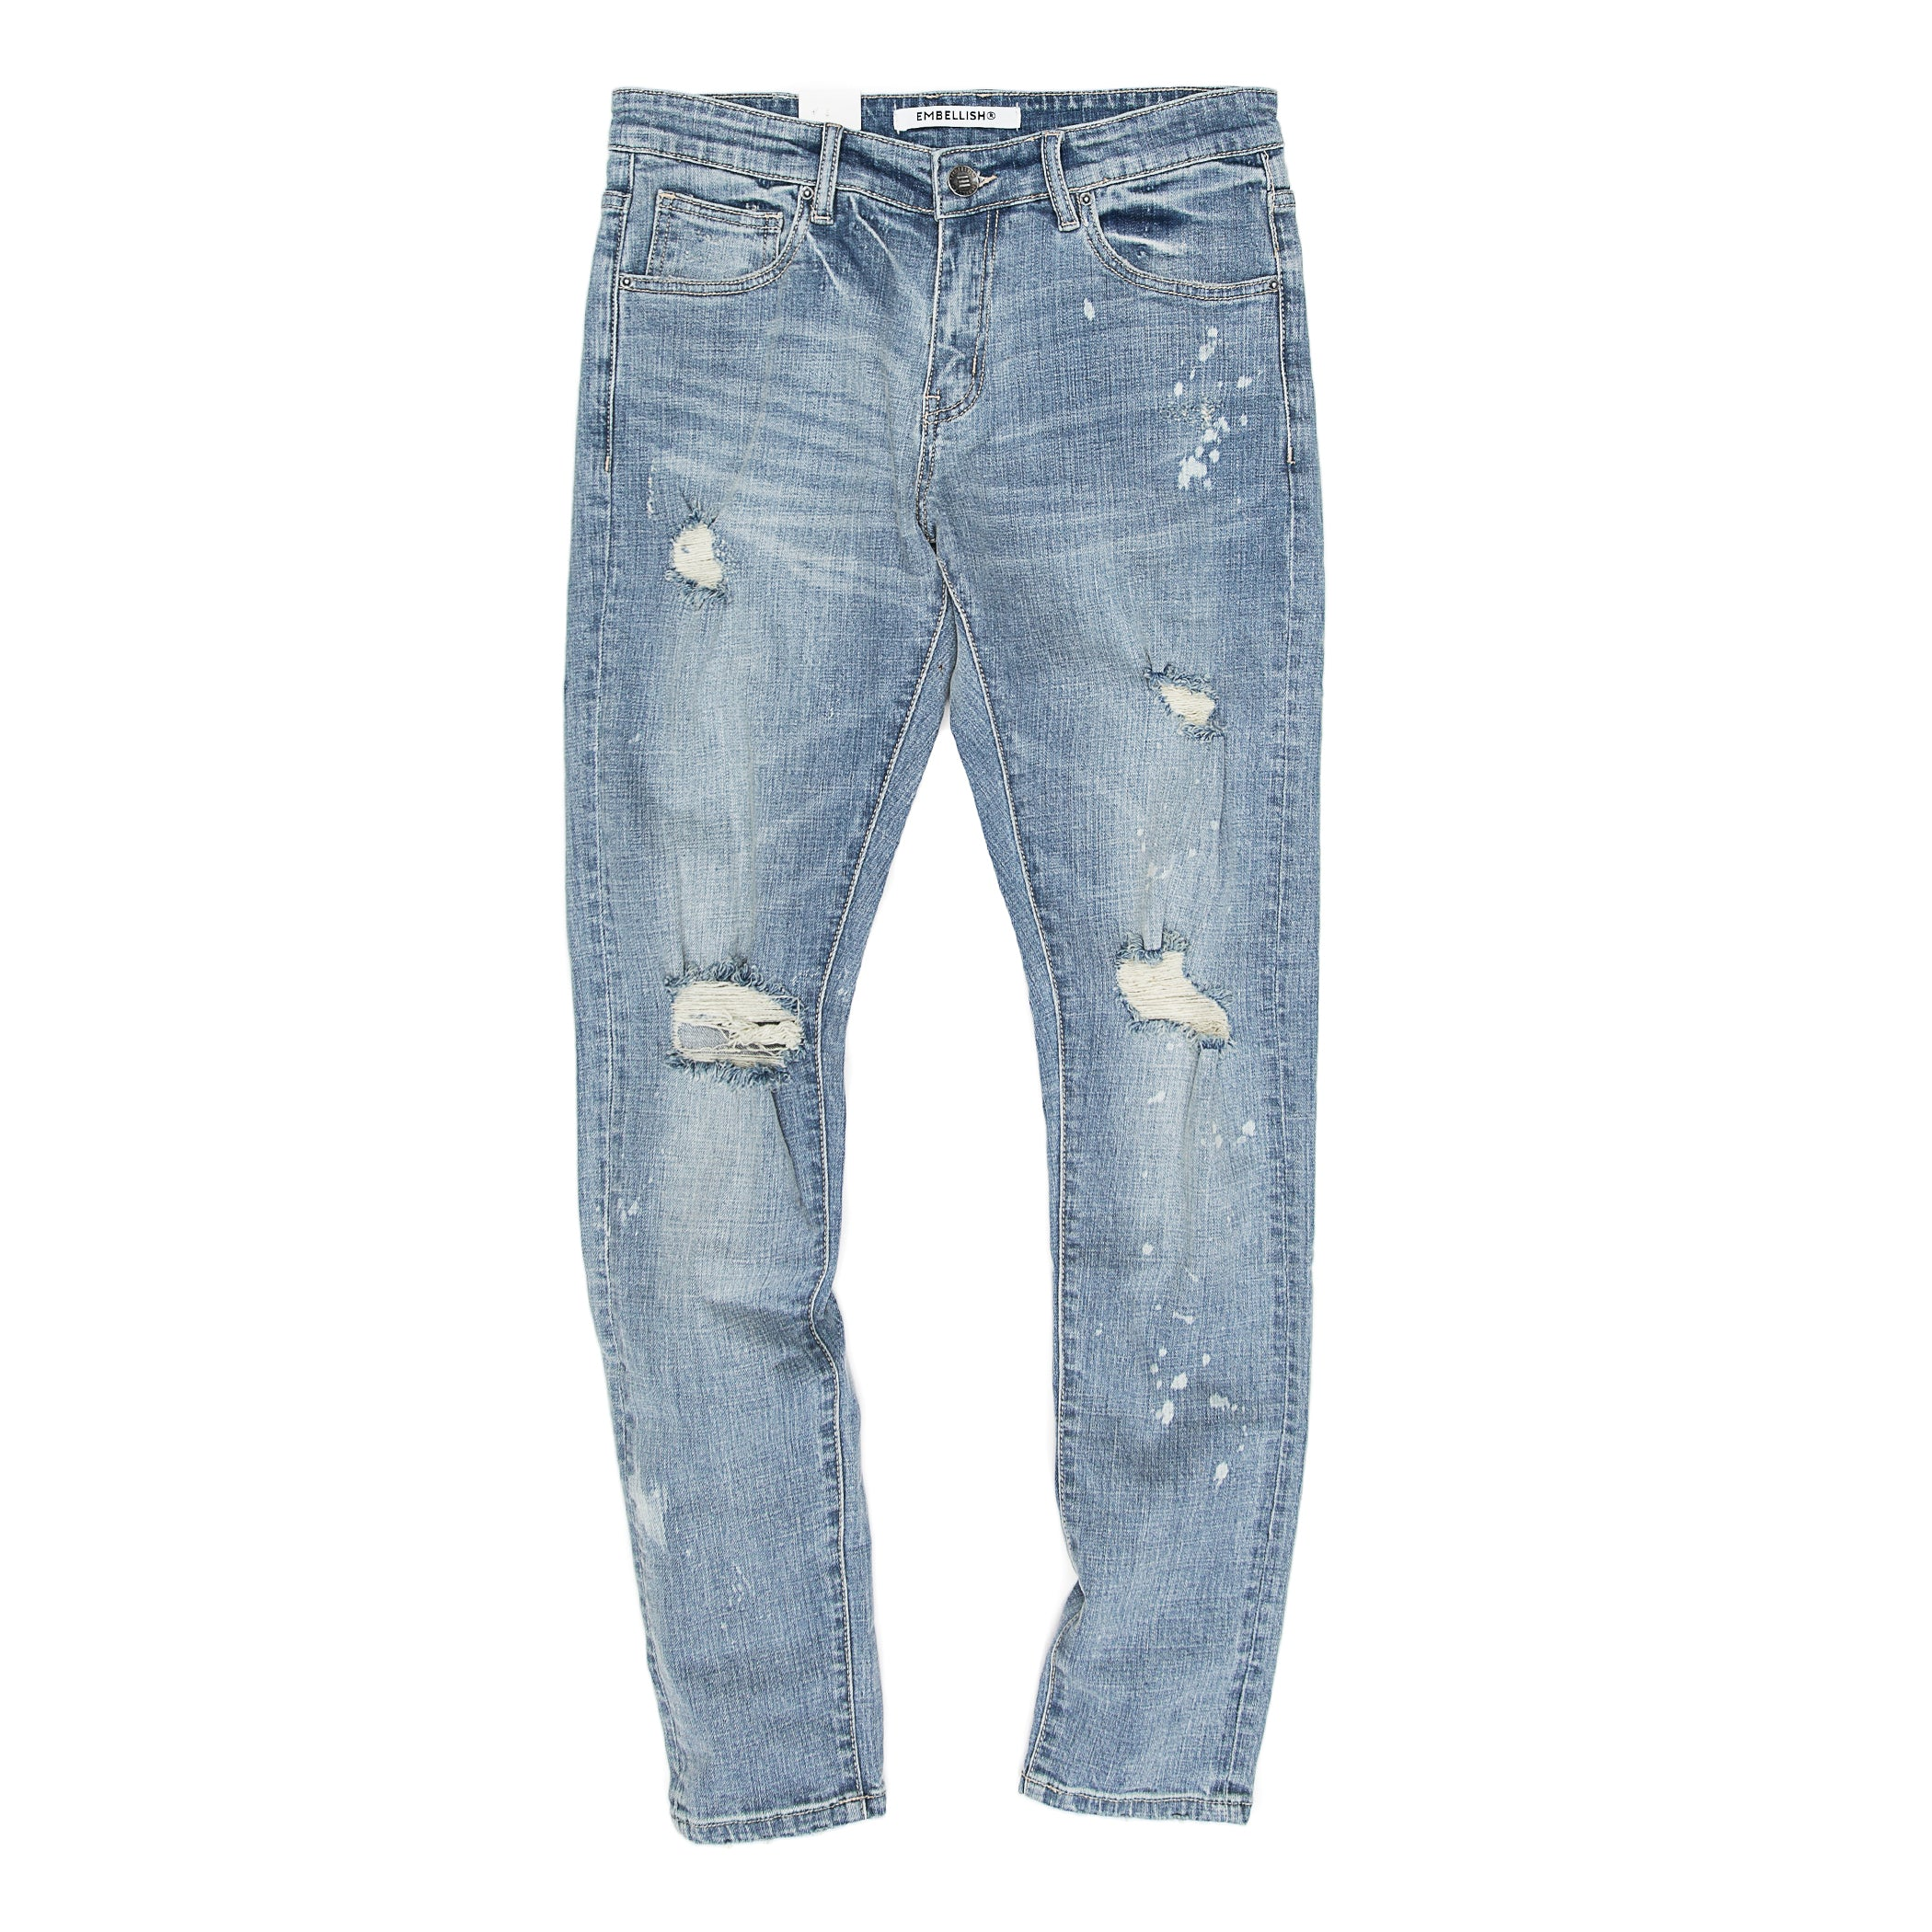 Embellish - Winslow Denim